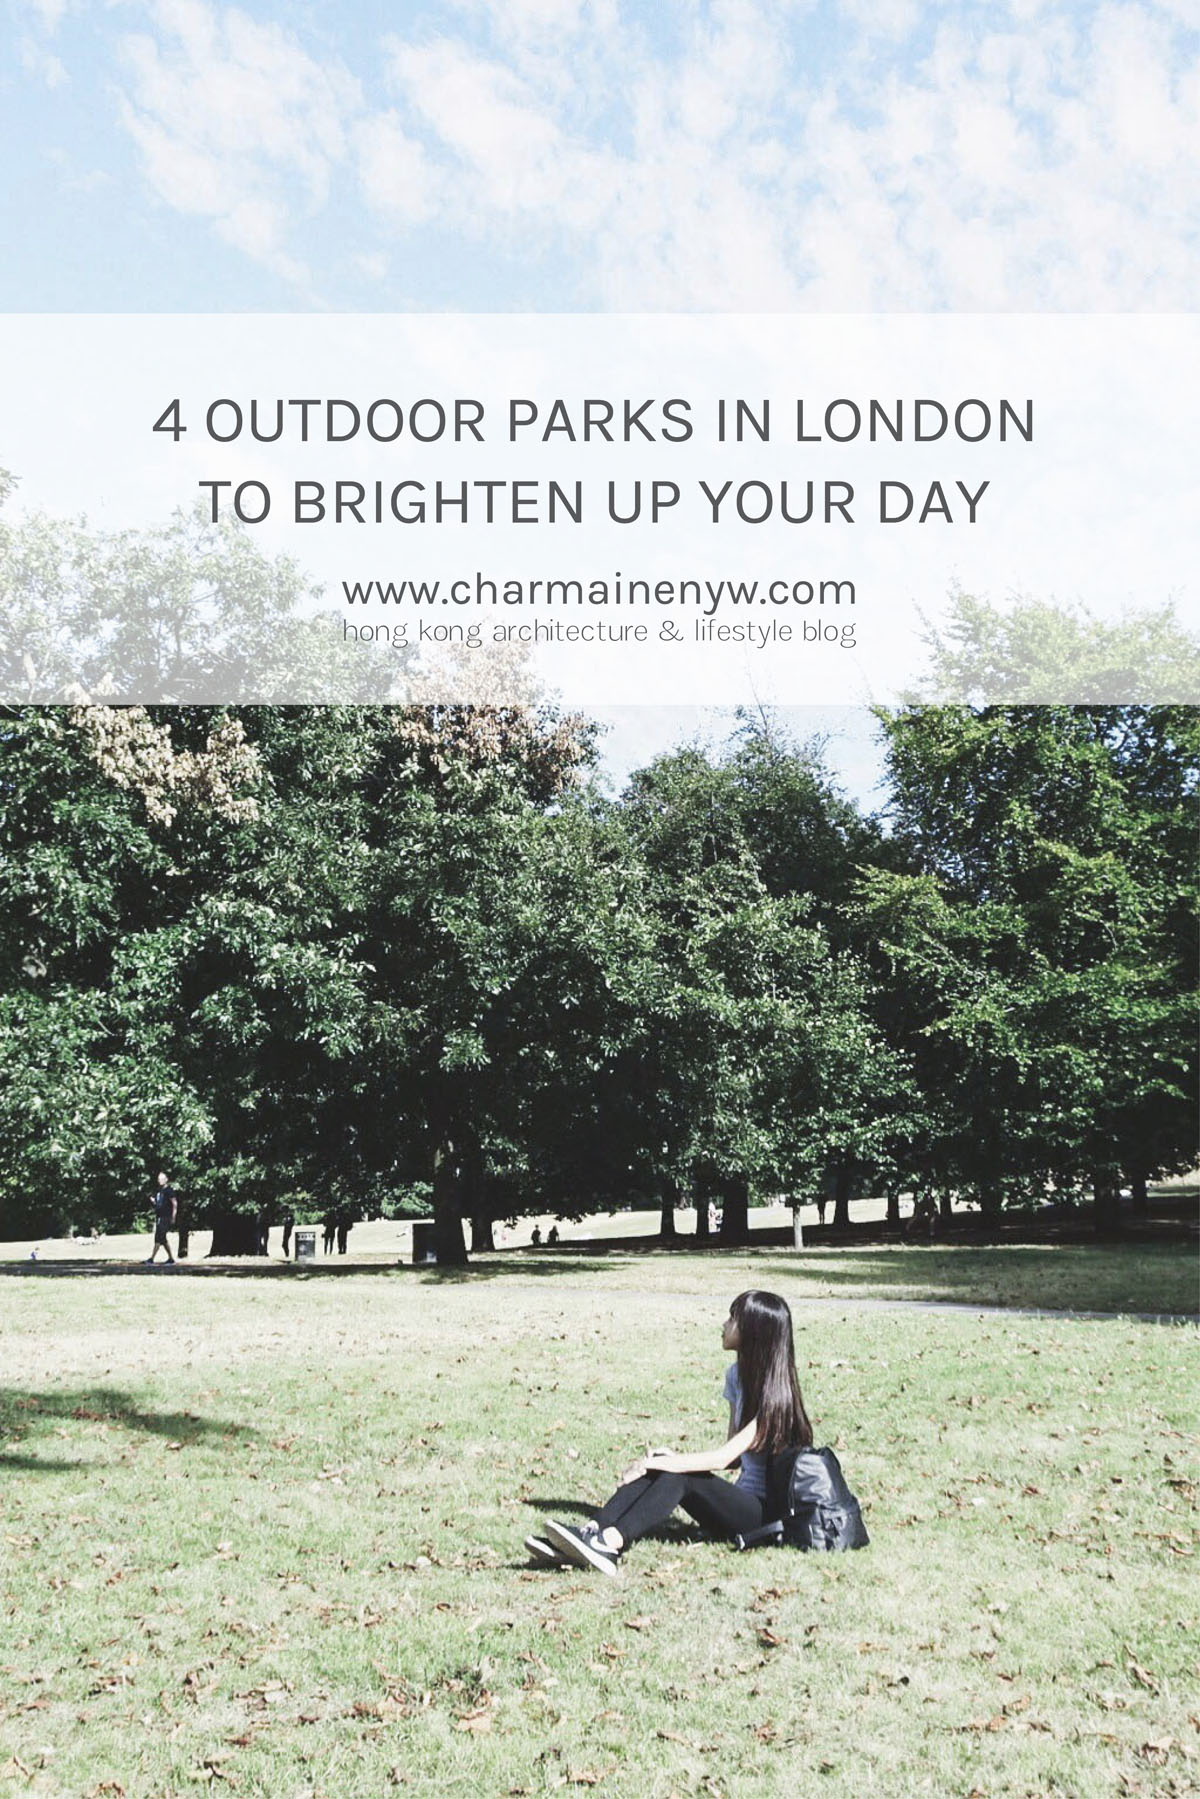 Outdoor parks in London - Greenwich Park